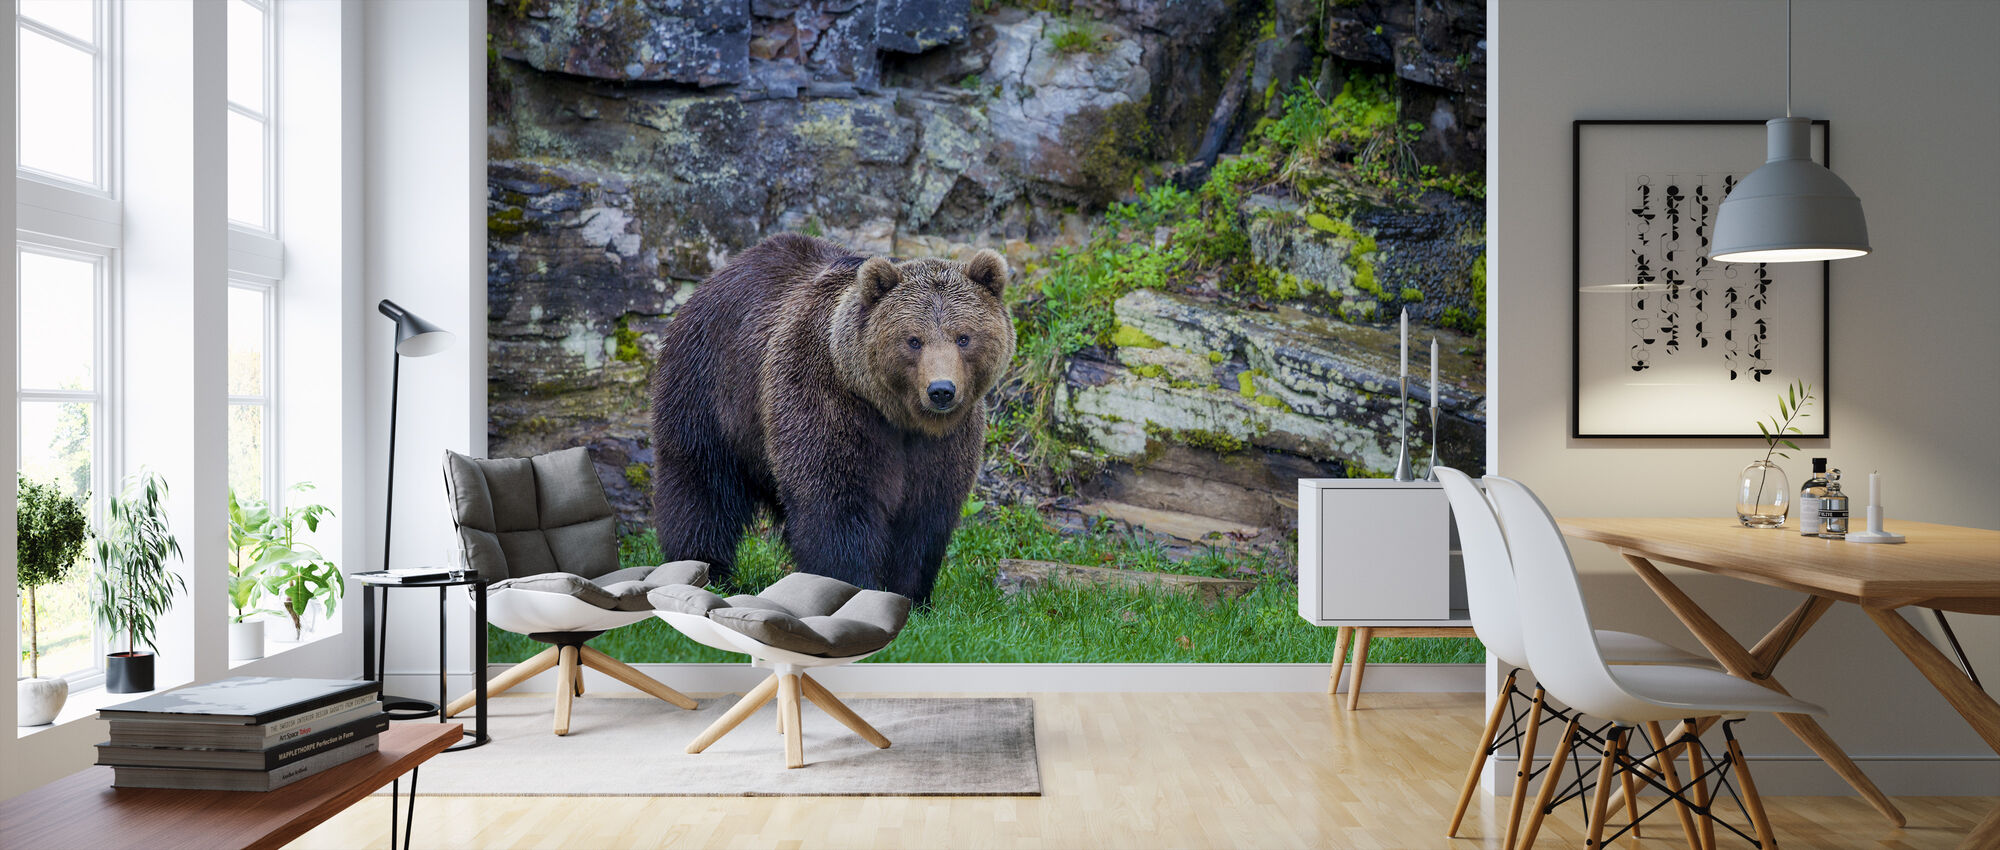 European Brown Bear, Pyrenees Mountains - Wallpaper - Living Room